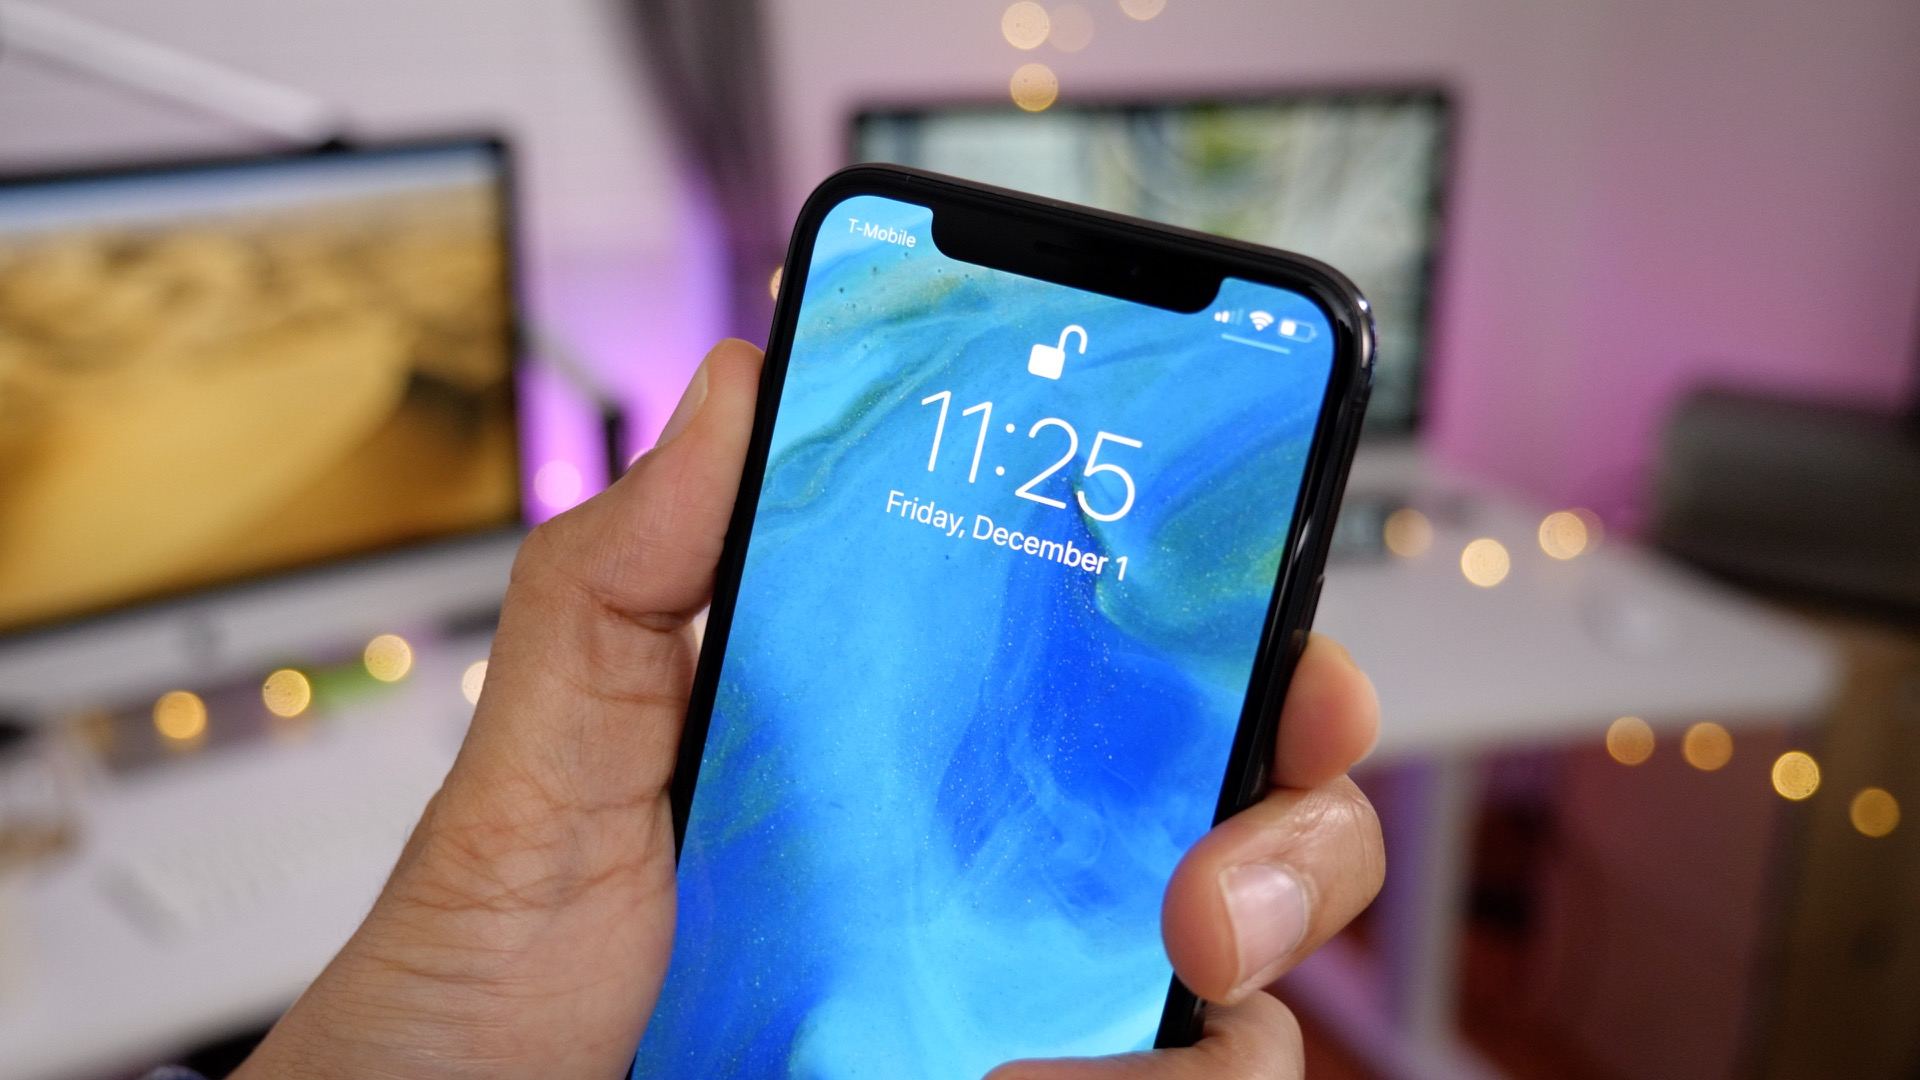 How to secure your iPhone and iPad Lock screen